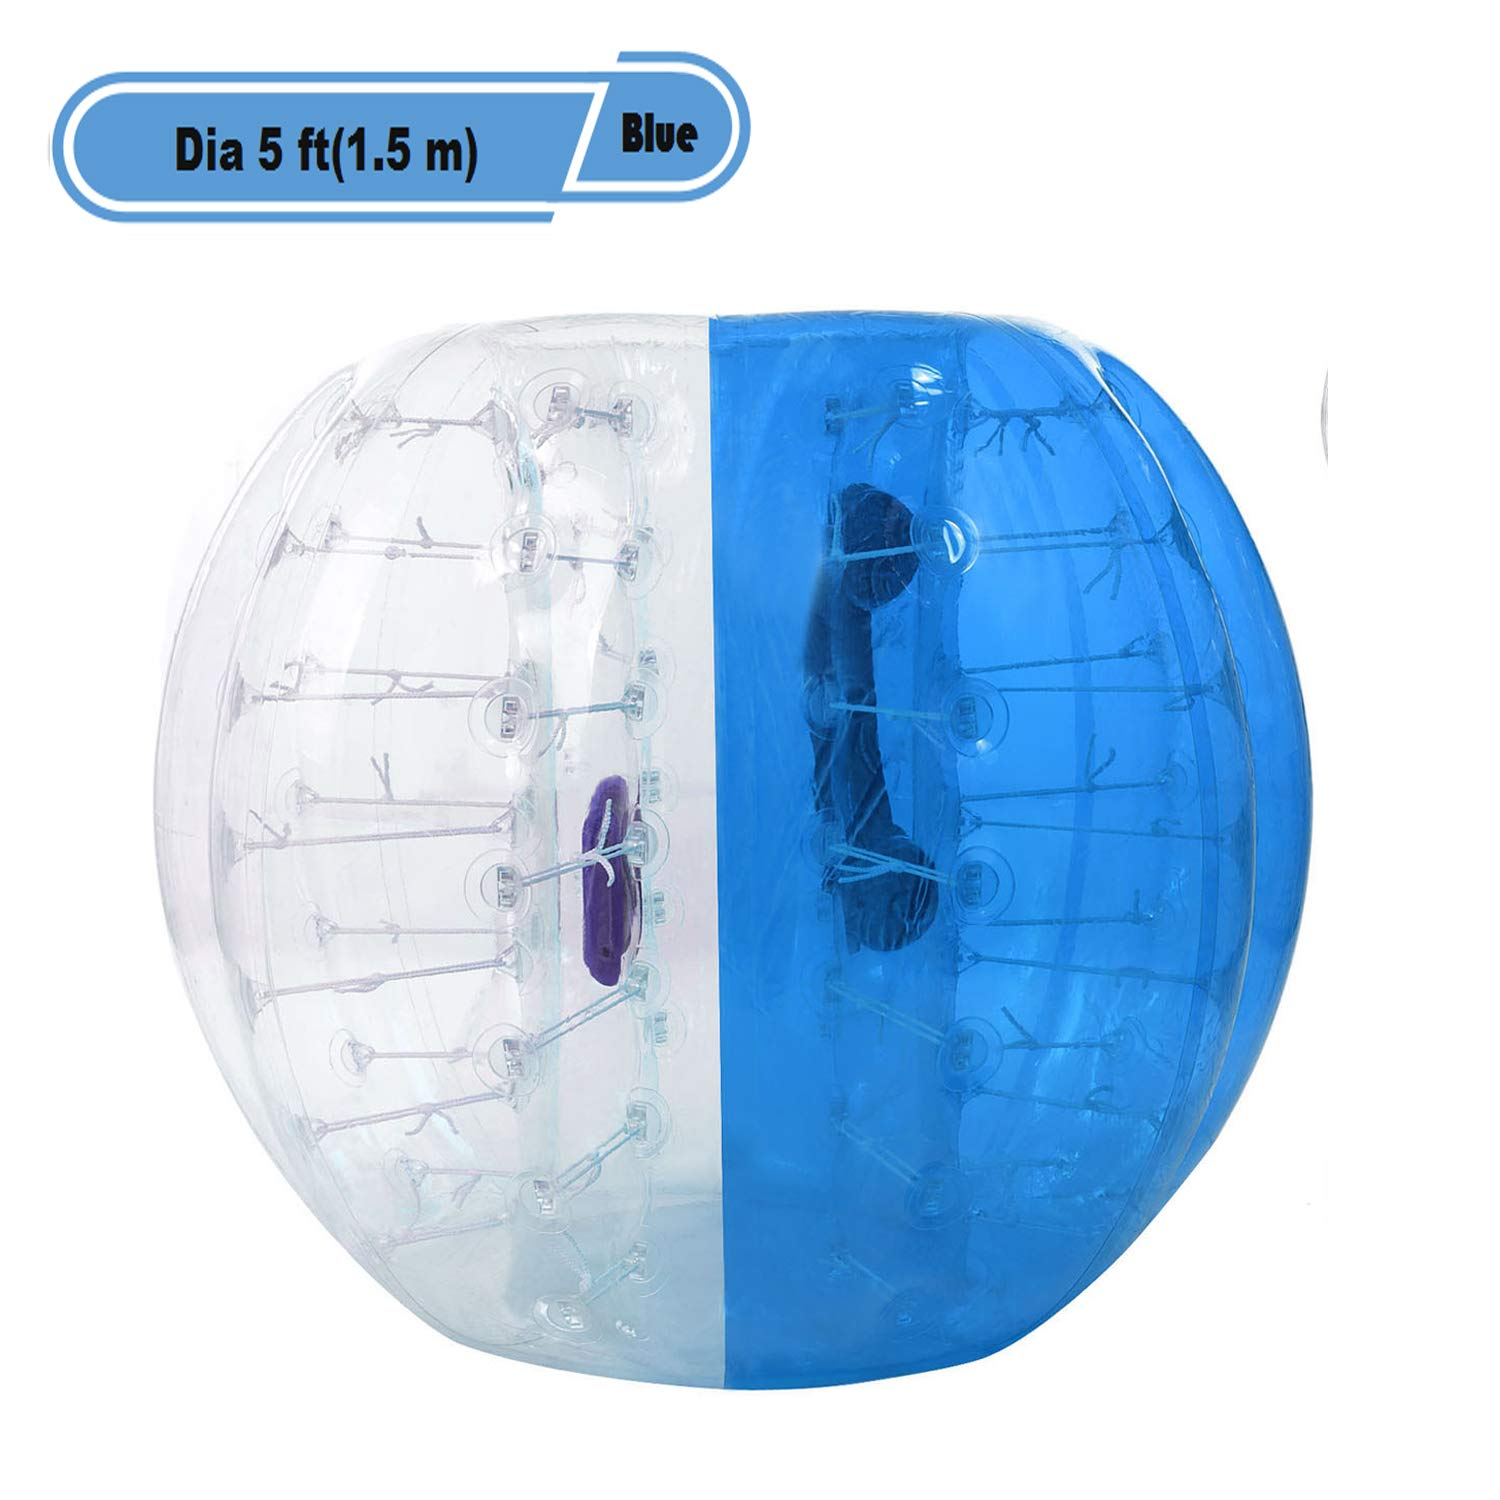 Yiilove Inflatable Bumper Ball 4 ft/5 ft(1.2/1.5 m) Bubble Soccer Ball Transparent Material Human Knocker Ballfor Adults and Kids (Dia 5 ft(1.5 m)-Blue)